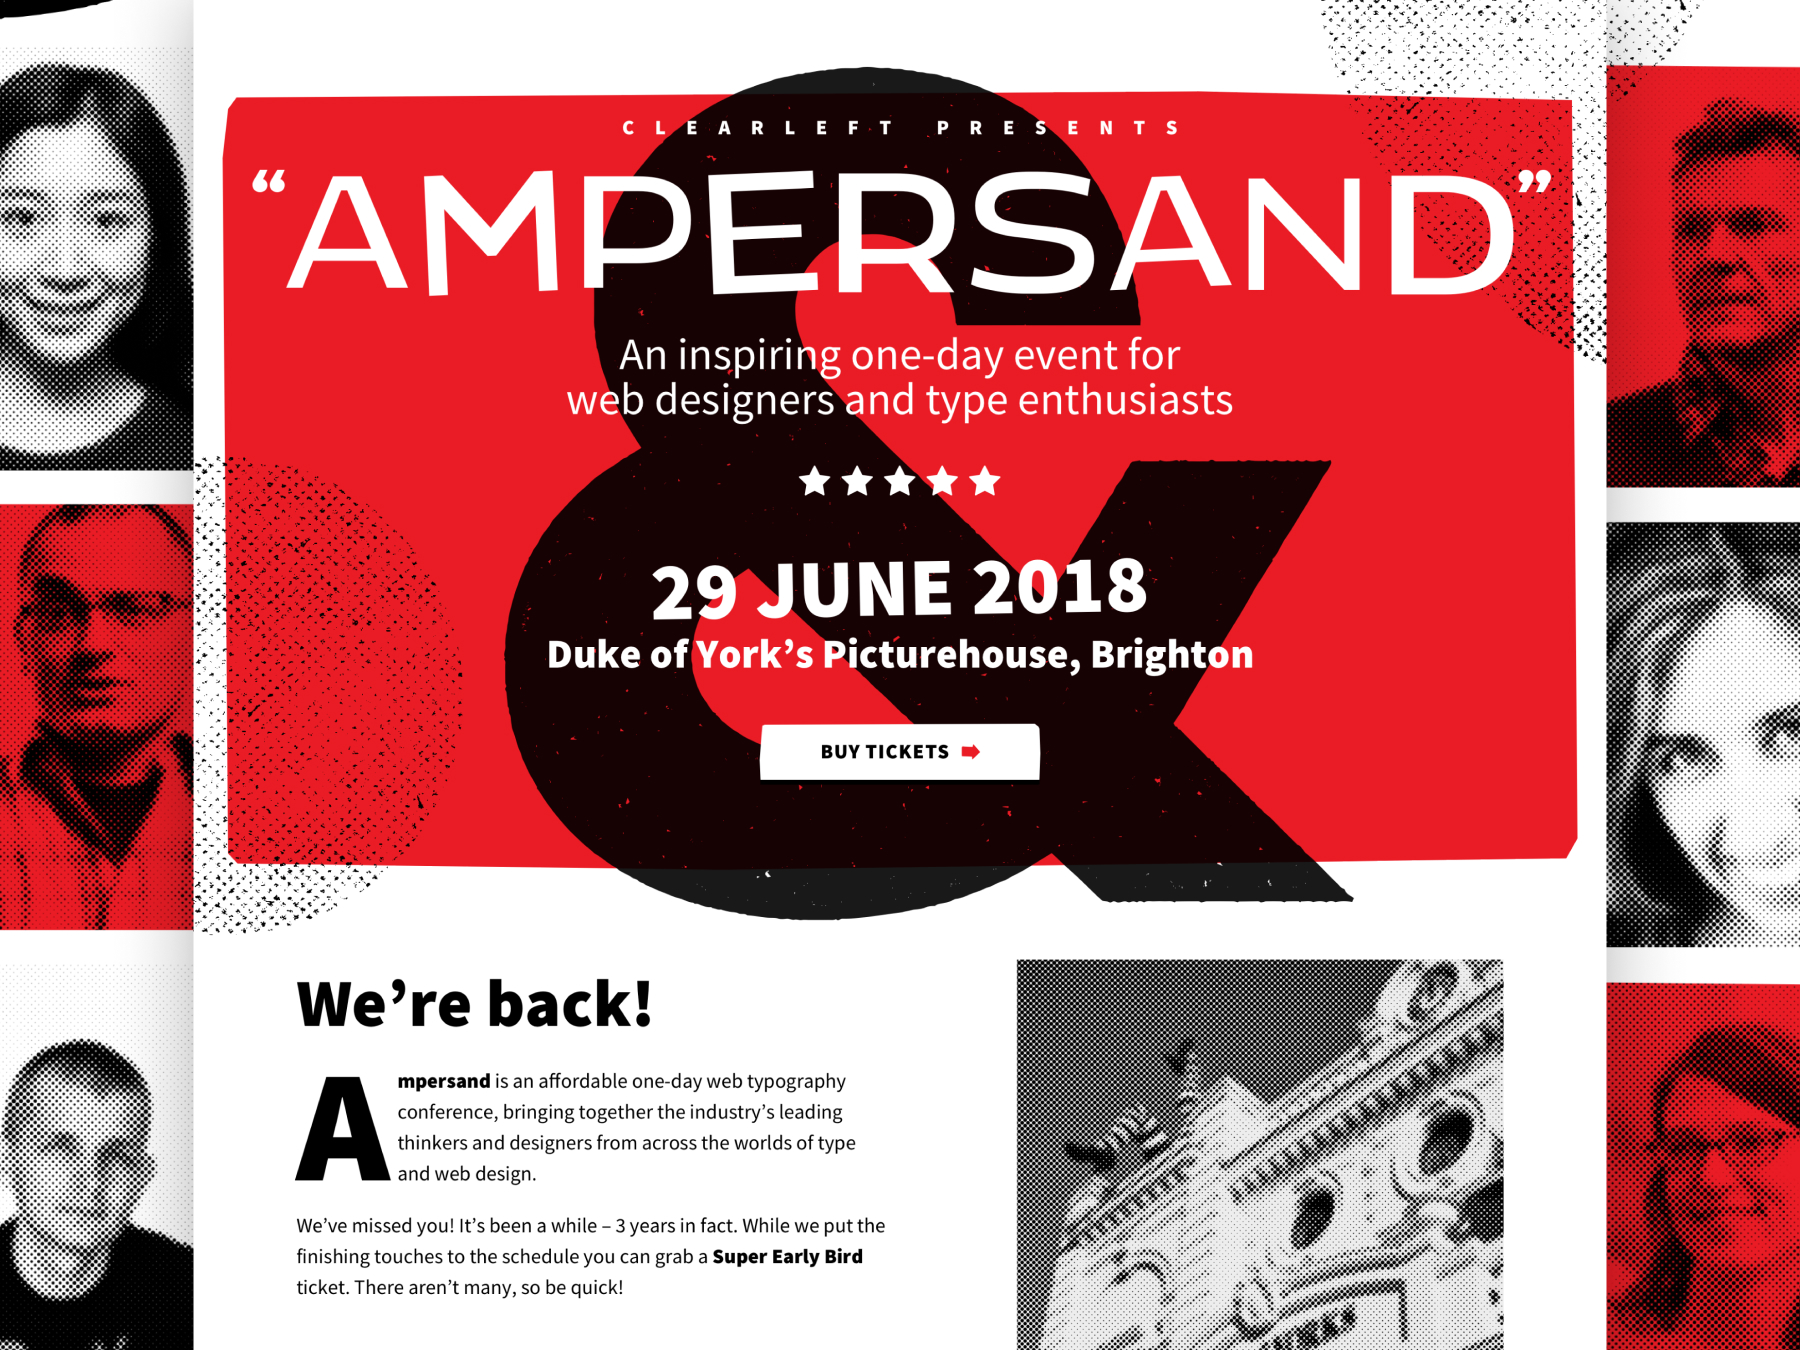 Ampersand 2018 website visual direction